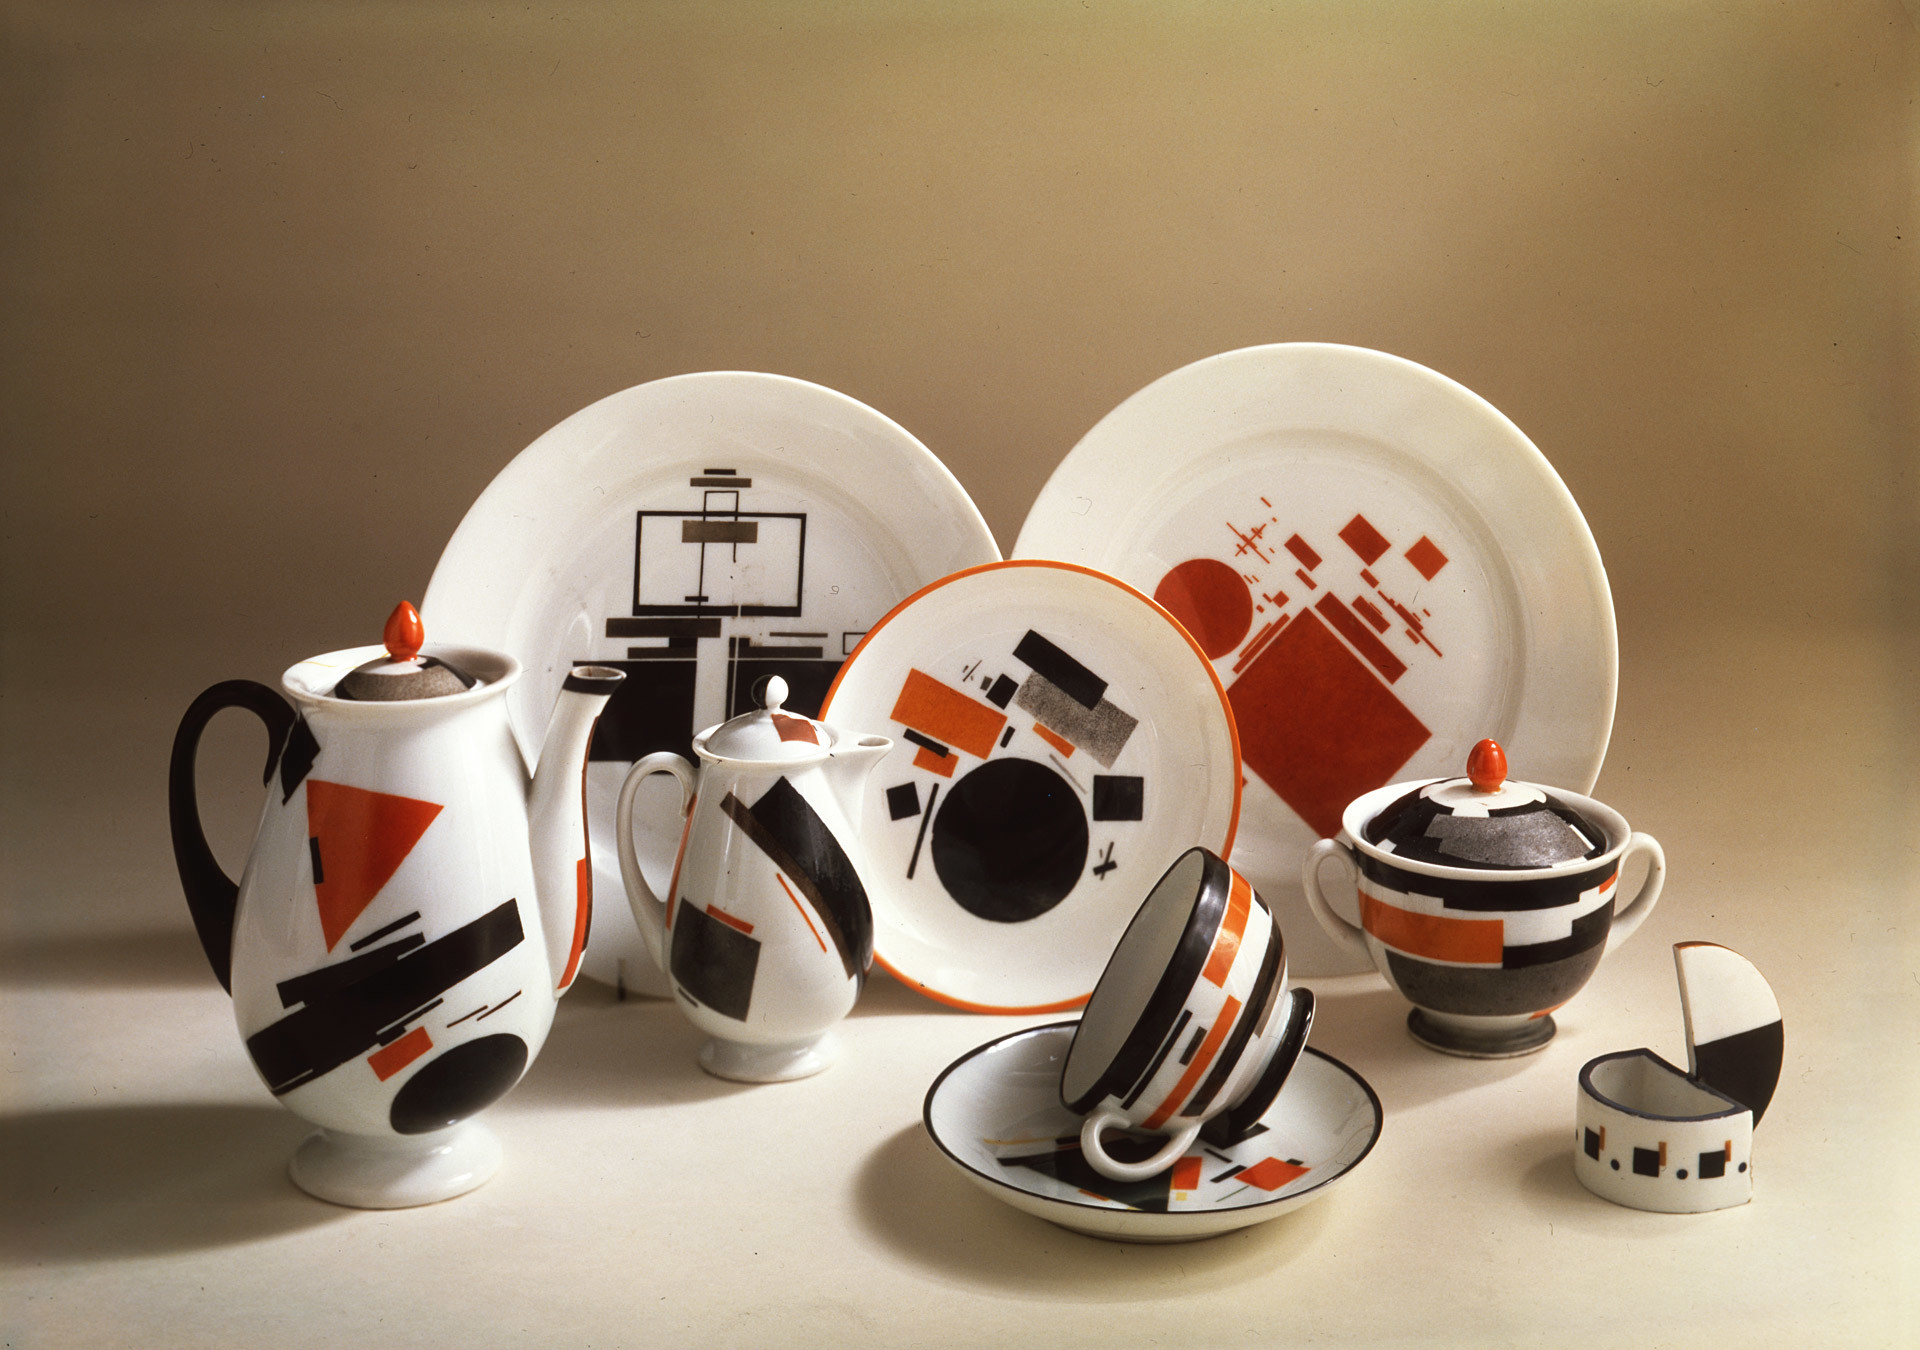 'Suprematism' set, by V. Chekhonin and N. Suetin. 1923. The Leningrad Porcelain Museum named after Lomonosov.